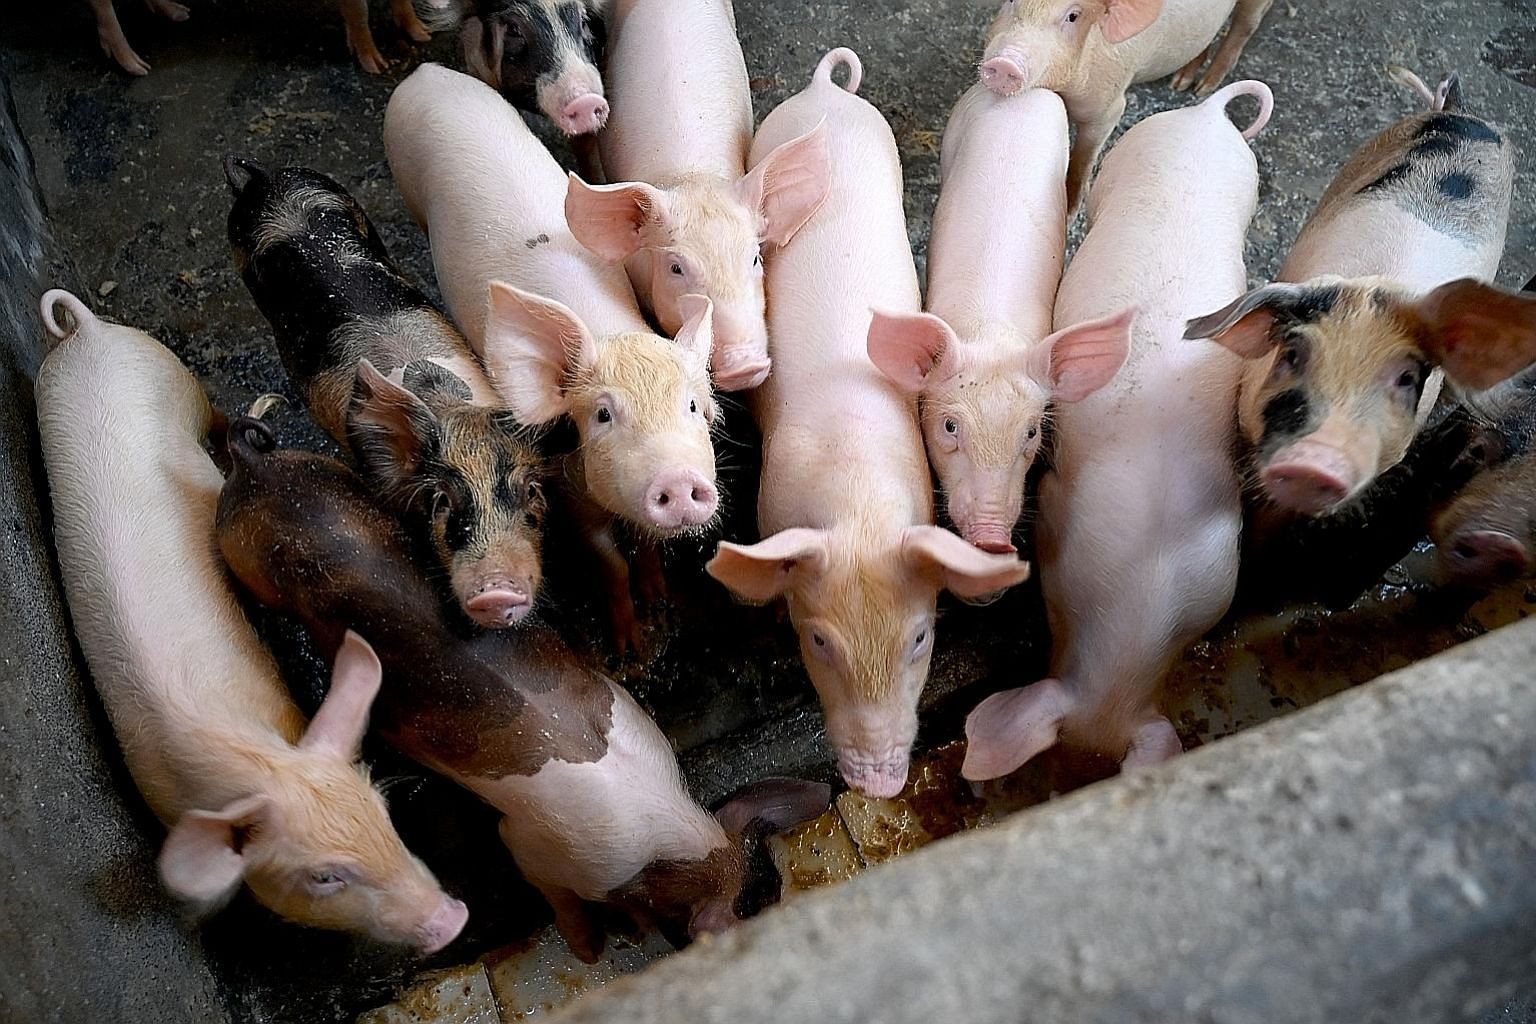 African swine fever has left over 40,000 pigs dead in North Sumatra in the past few months. PHOTO: AGENCE FRANCE-PRESSE